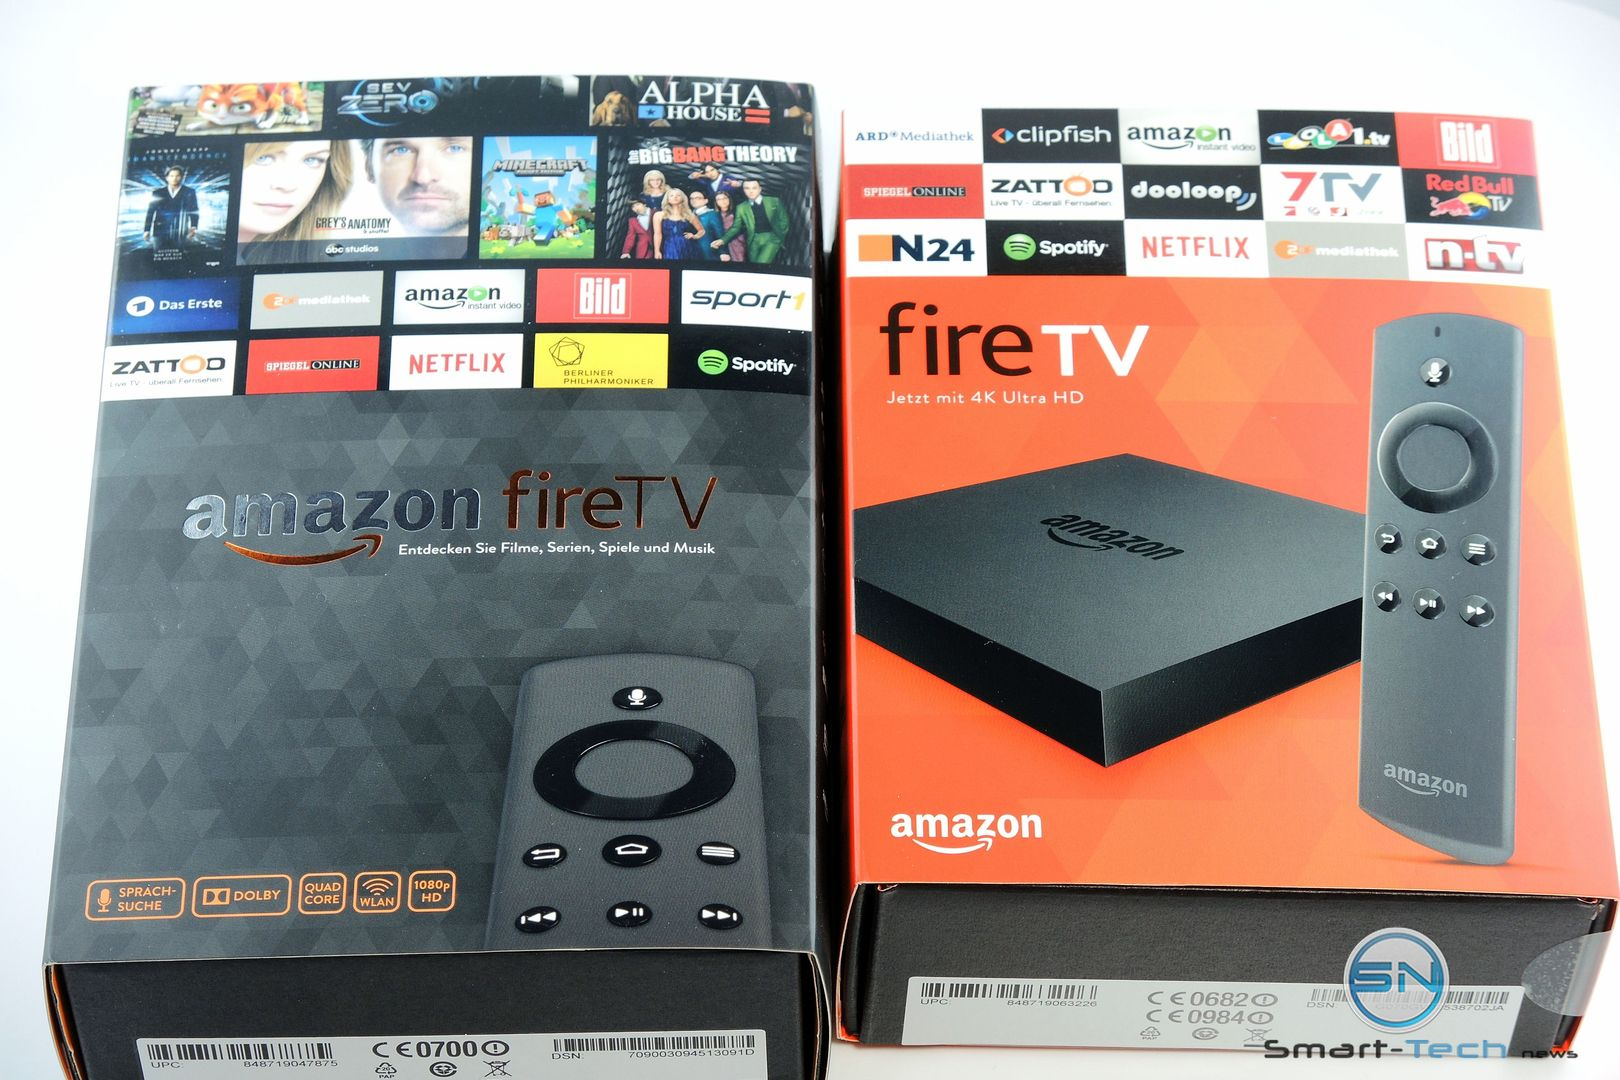 Amazon FireTV vs FireTV 4K - SmartTechNews